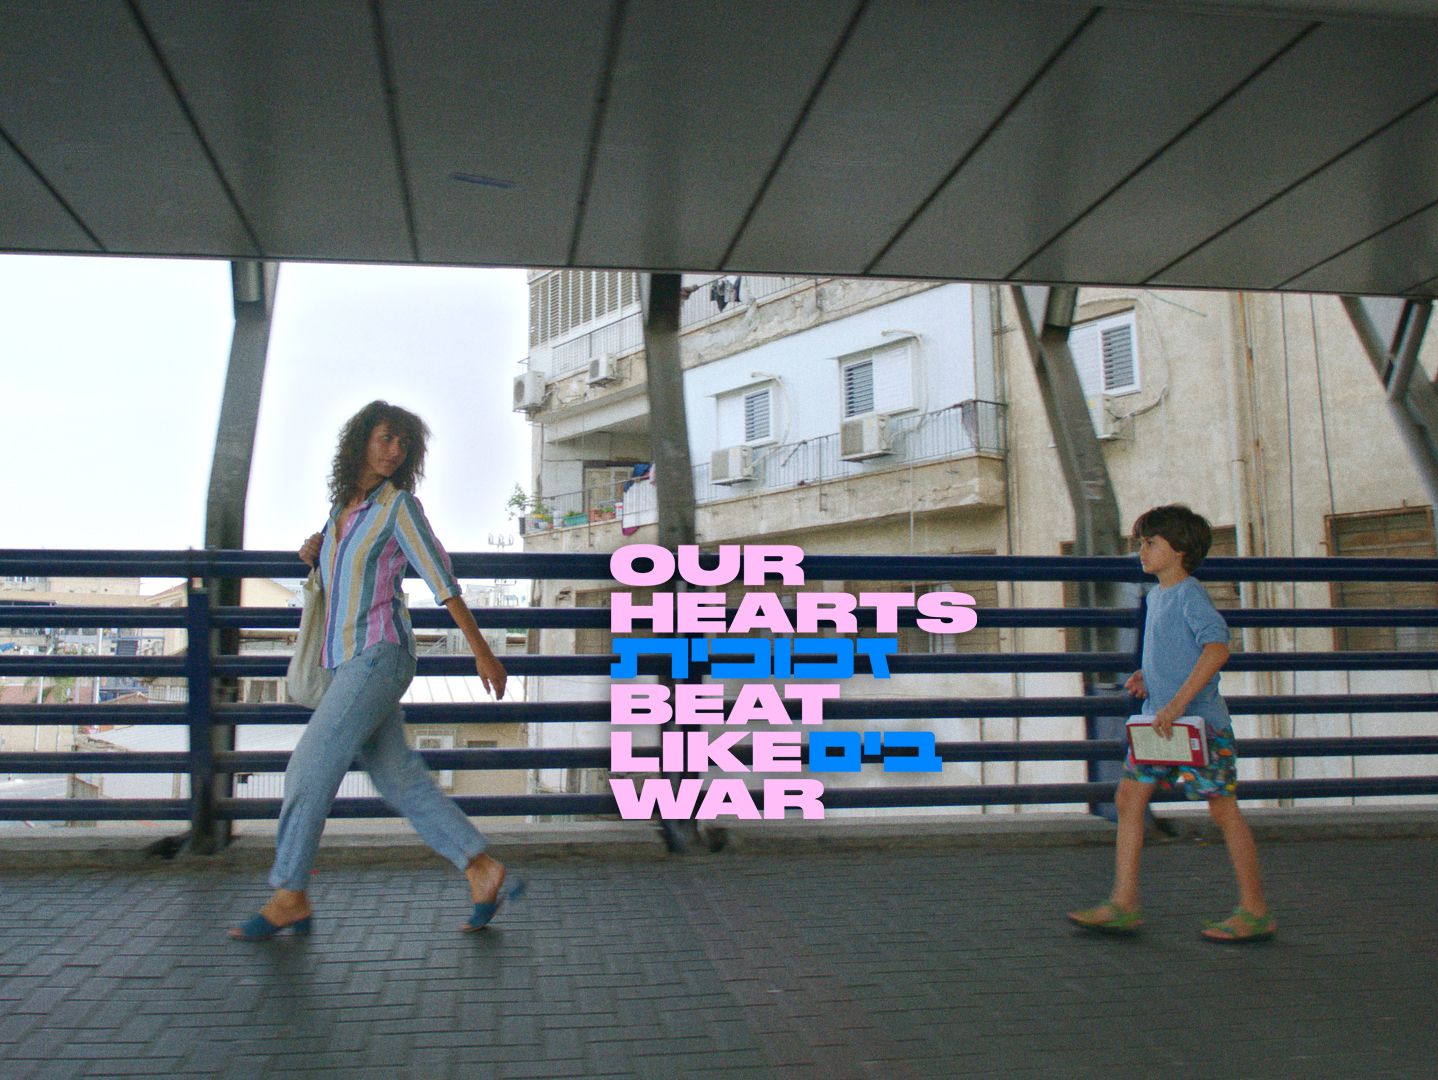 Our Hearts Beat Like War public4